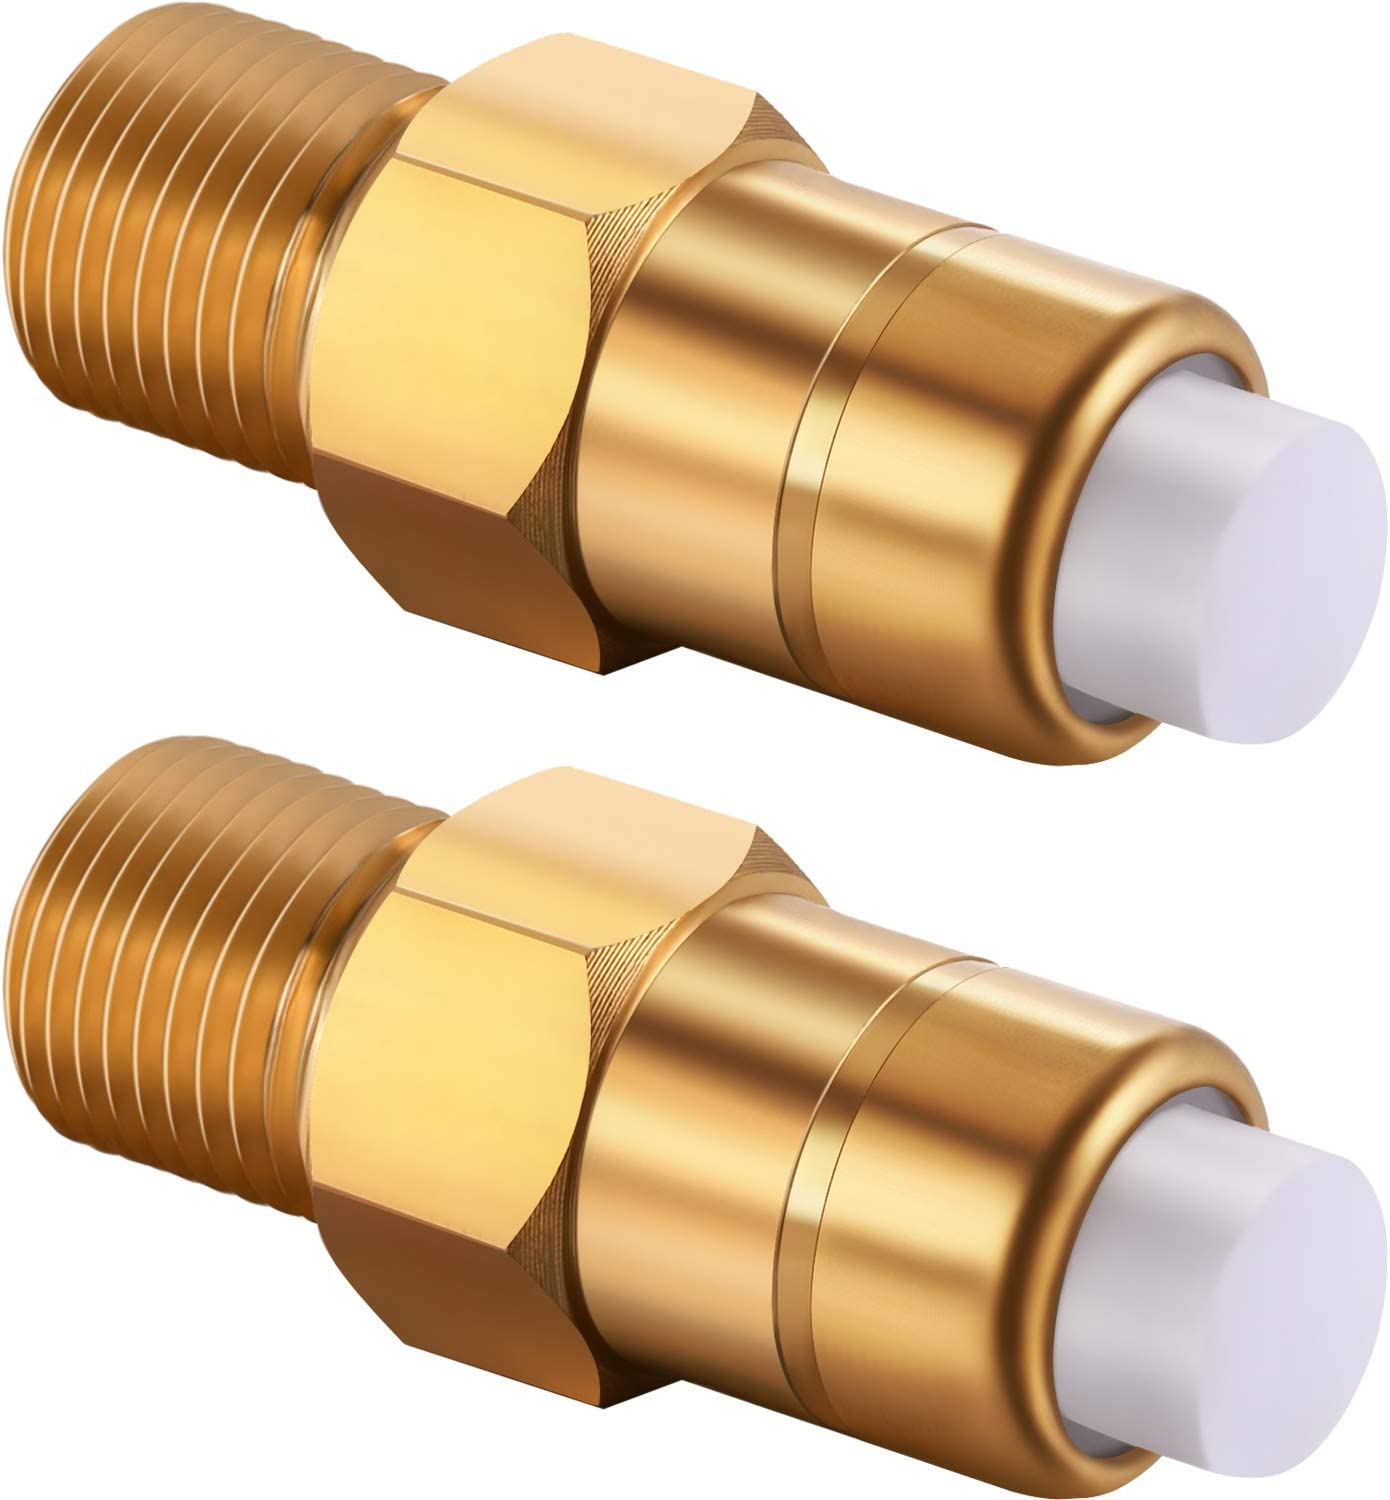 Hotop 2 Pieces 1/4 Inch Pressure Washers Replacement Thermal Release Valve, 678169004, Brass